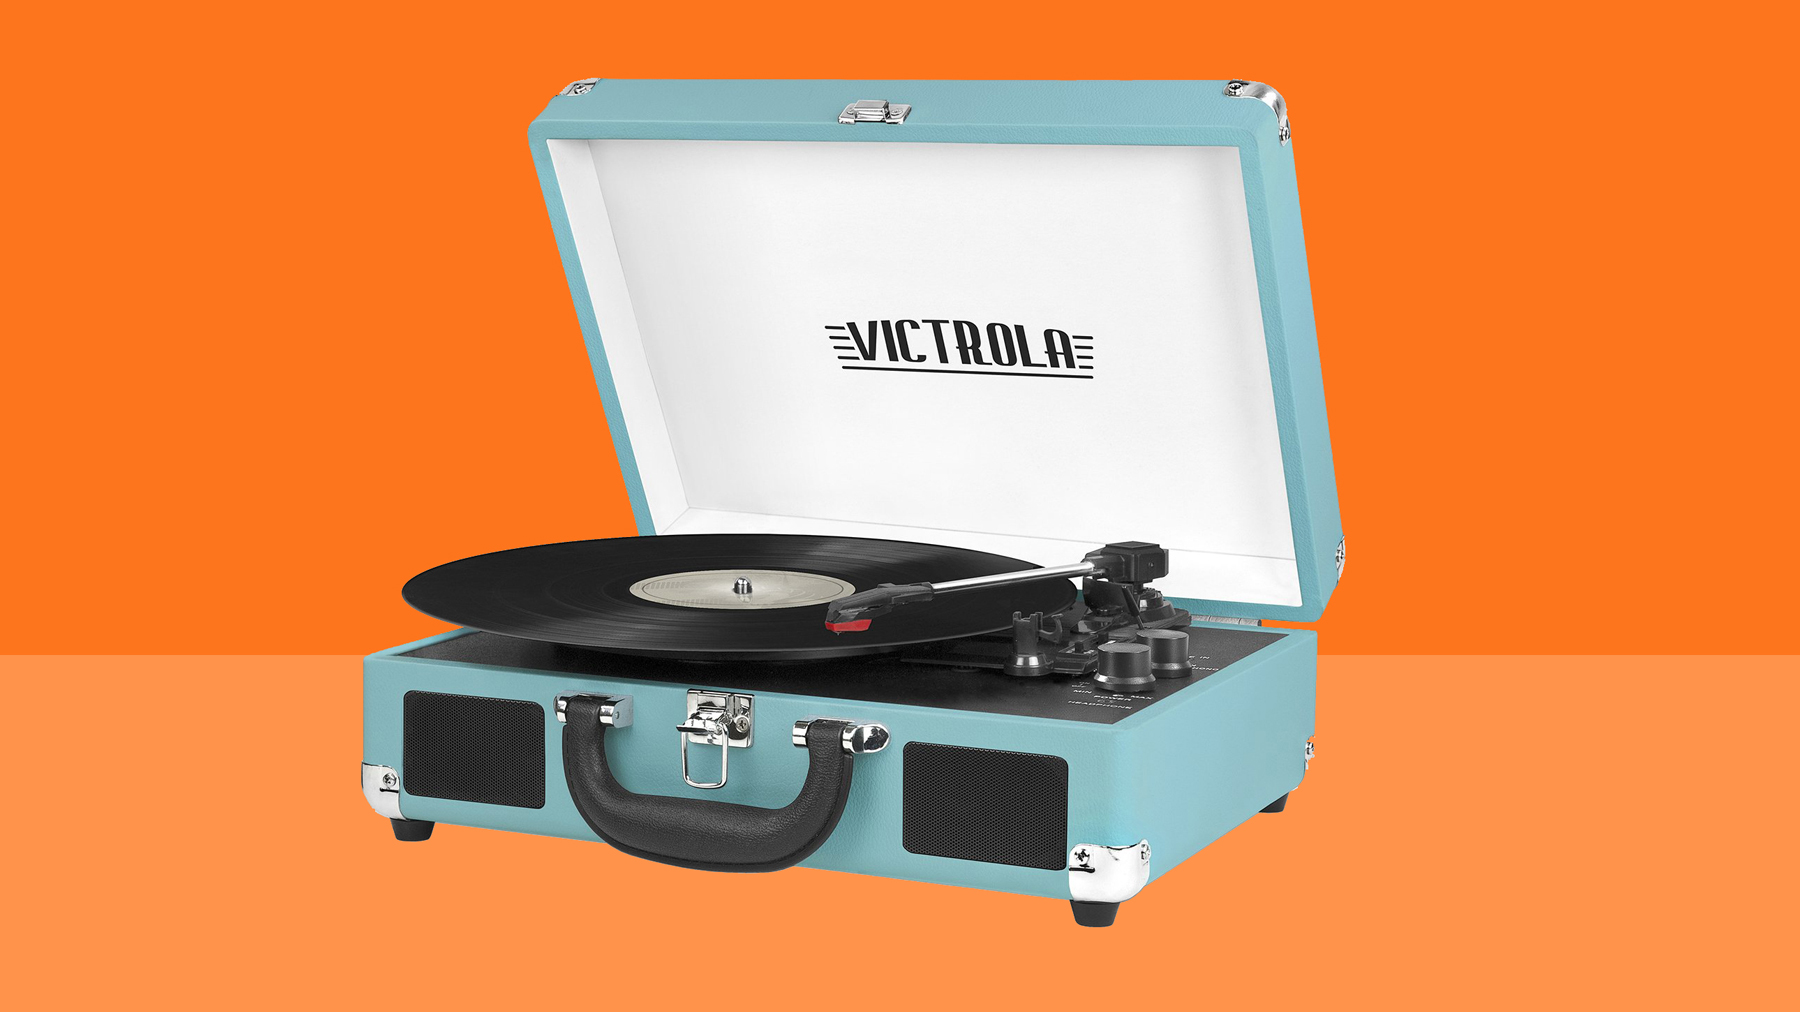 Christmas gifts for brother - record player tout